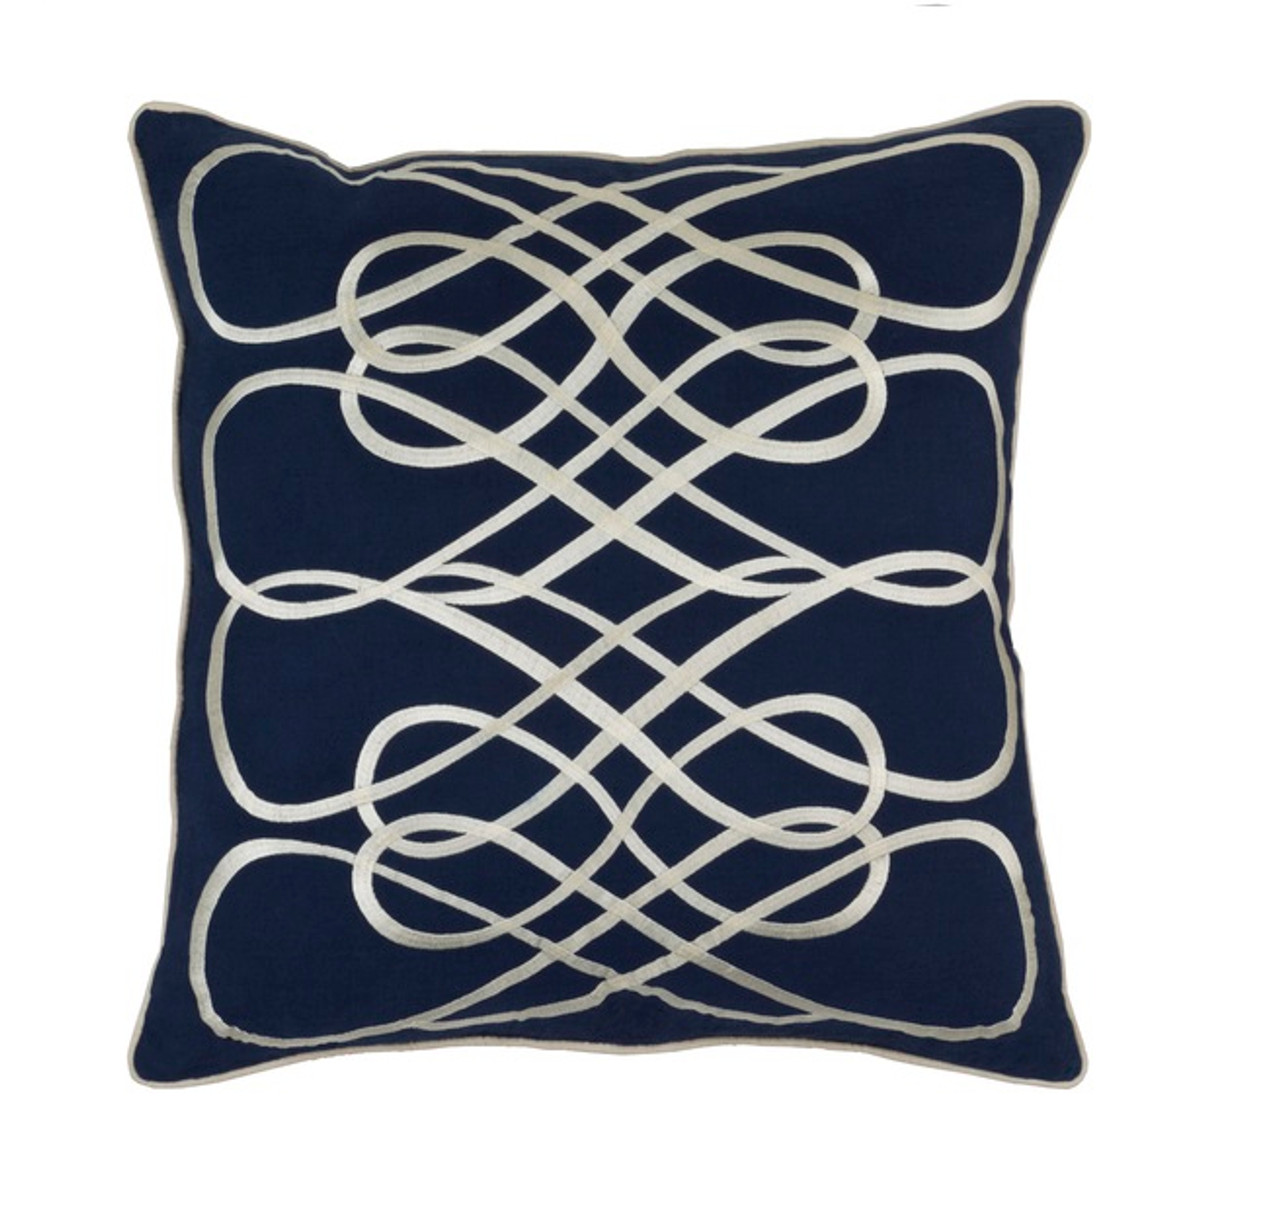 18? Marine Blue & Cashmere White Woven Decorative Throw Pillow Christmas Central